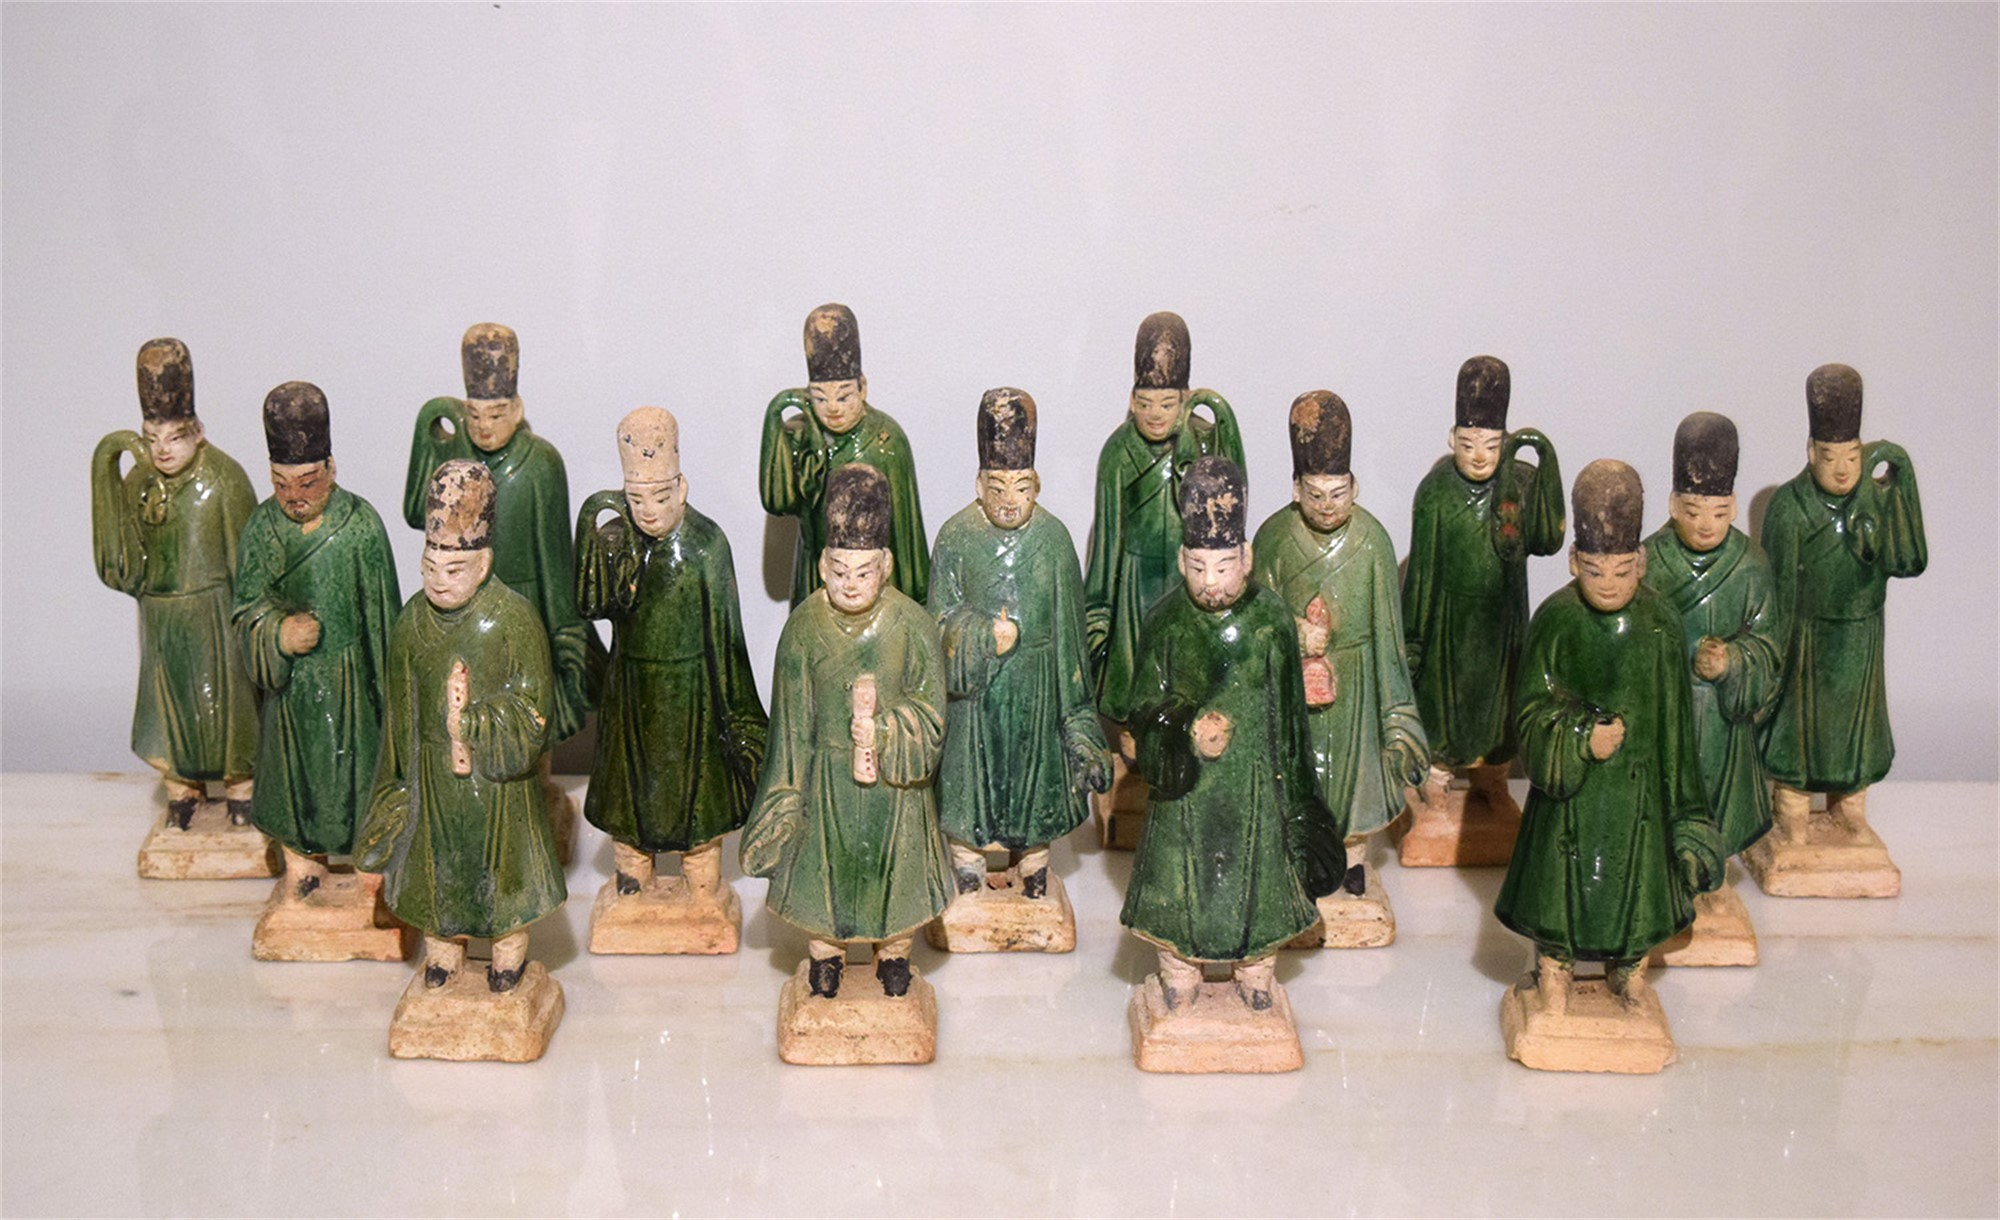 SET OF 15 GREEN-GLAZED POTTERY FIGURES